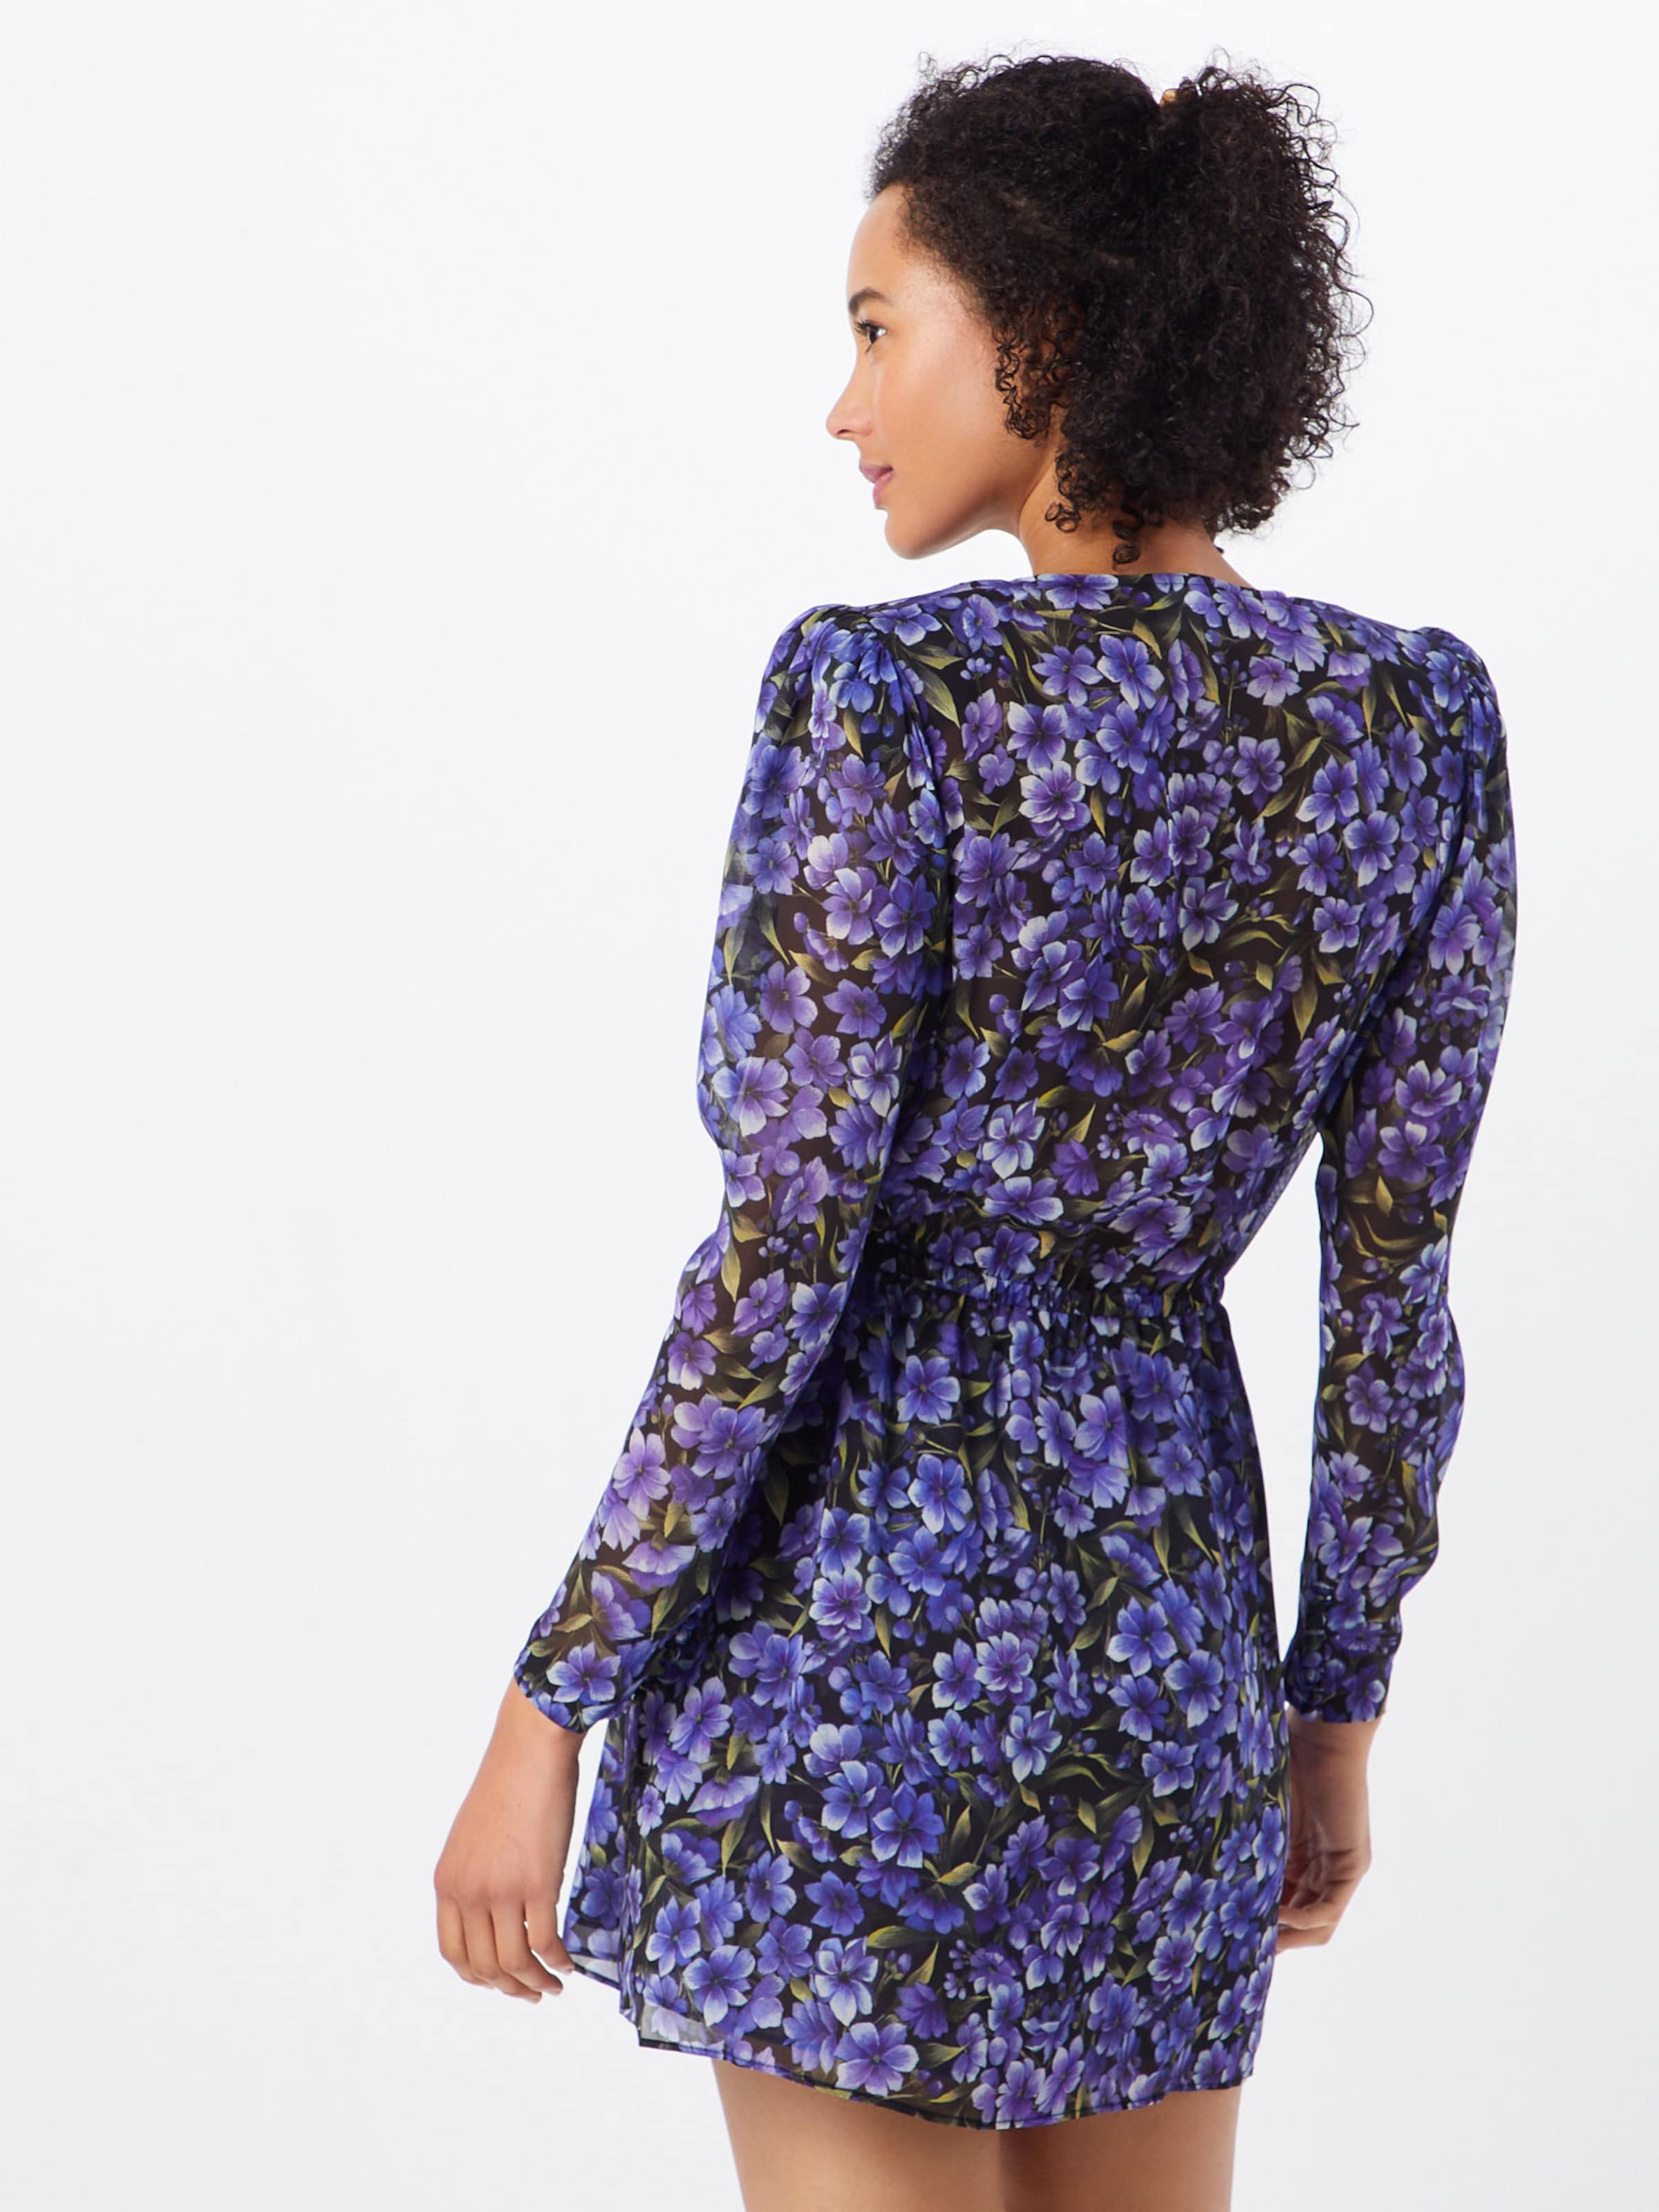 FoncéNoir En Robe Violet The Kooples 'frob18026k' ZuPkXiO